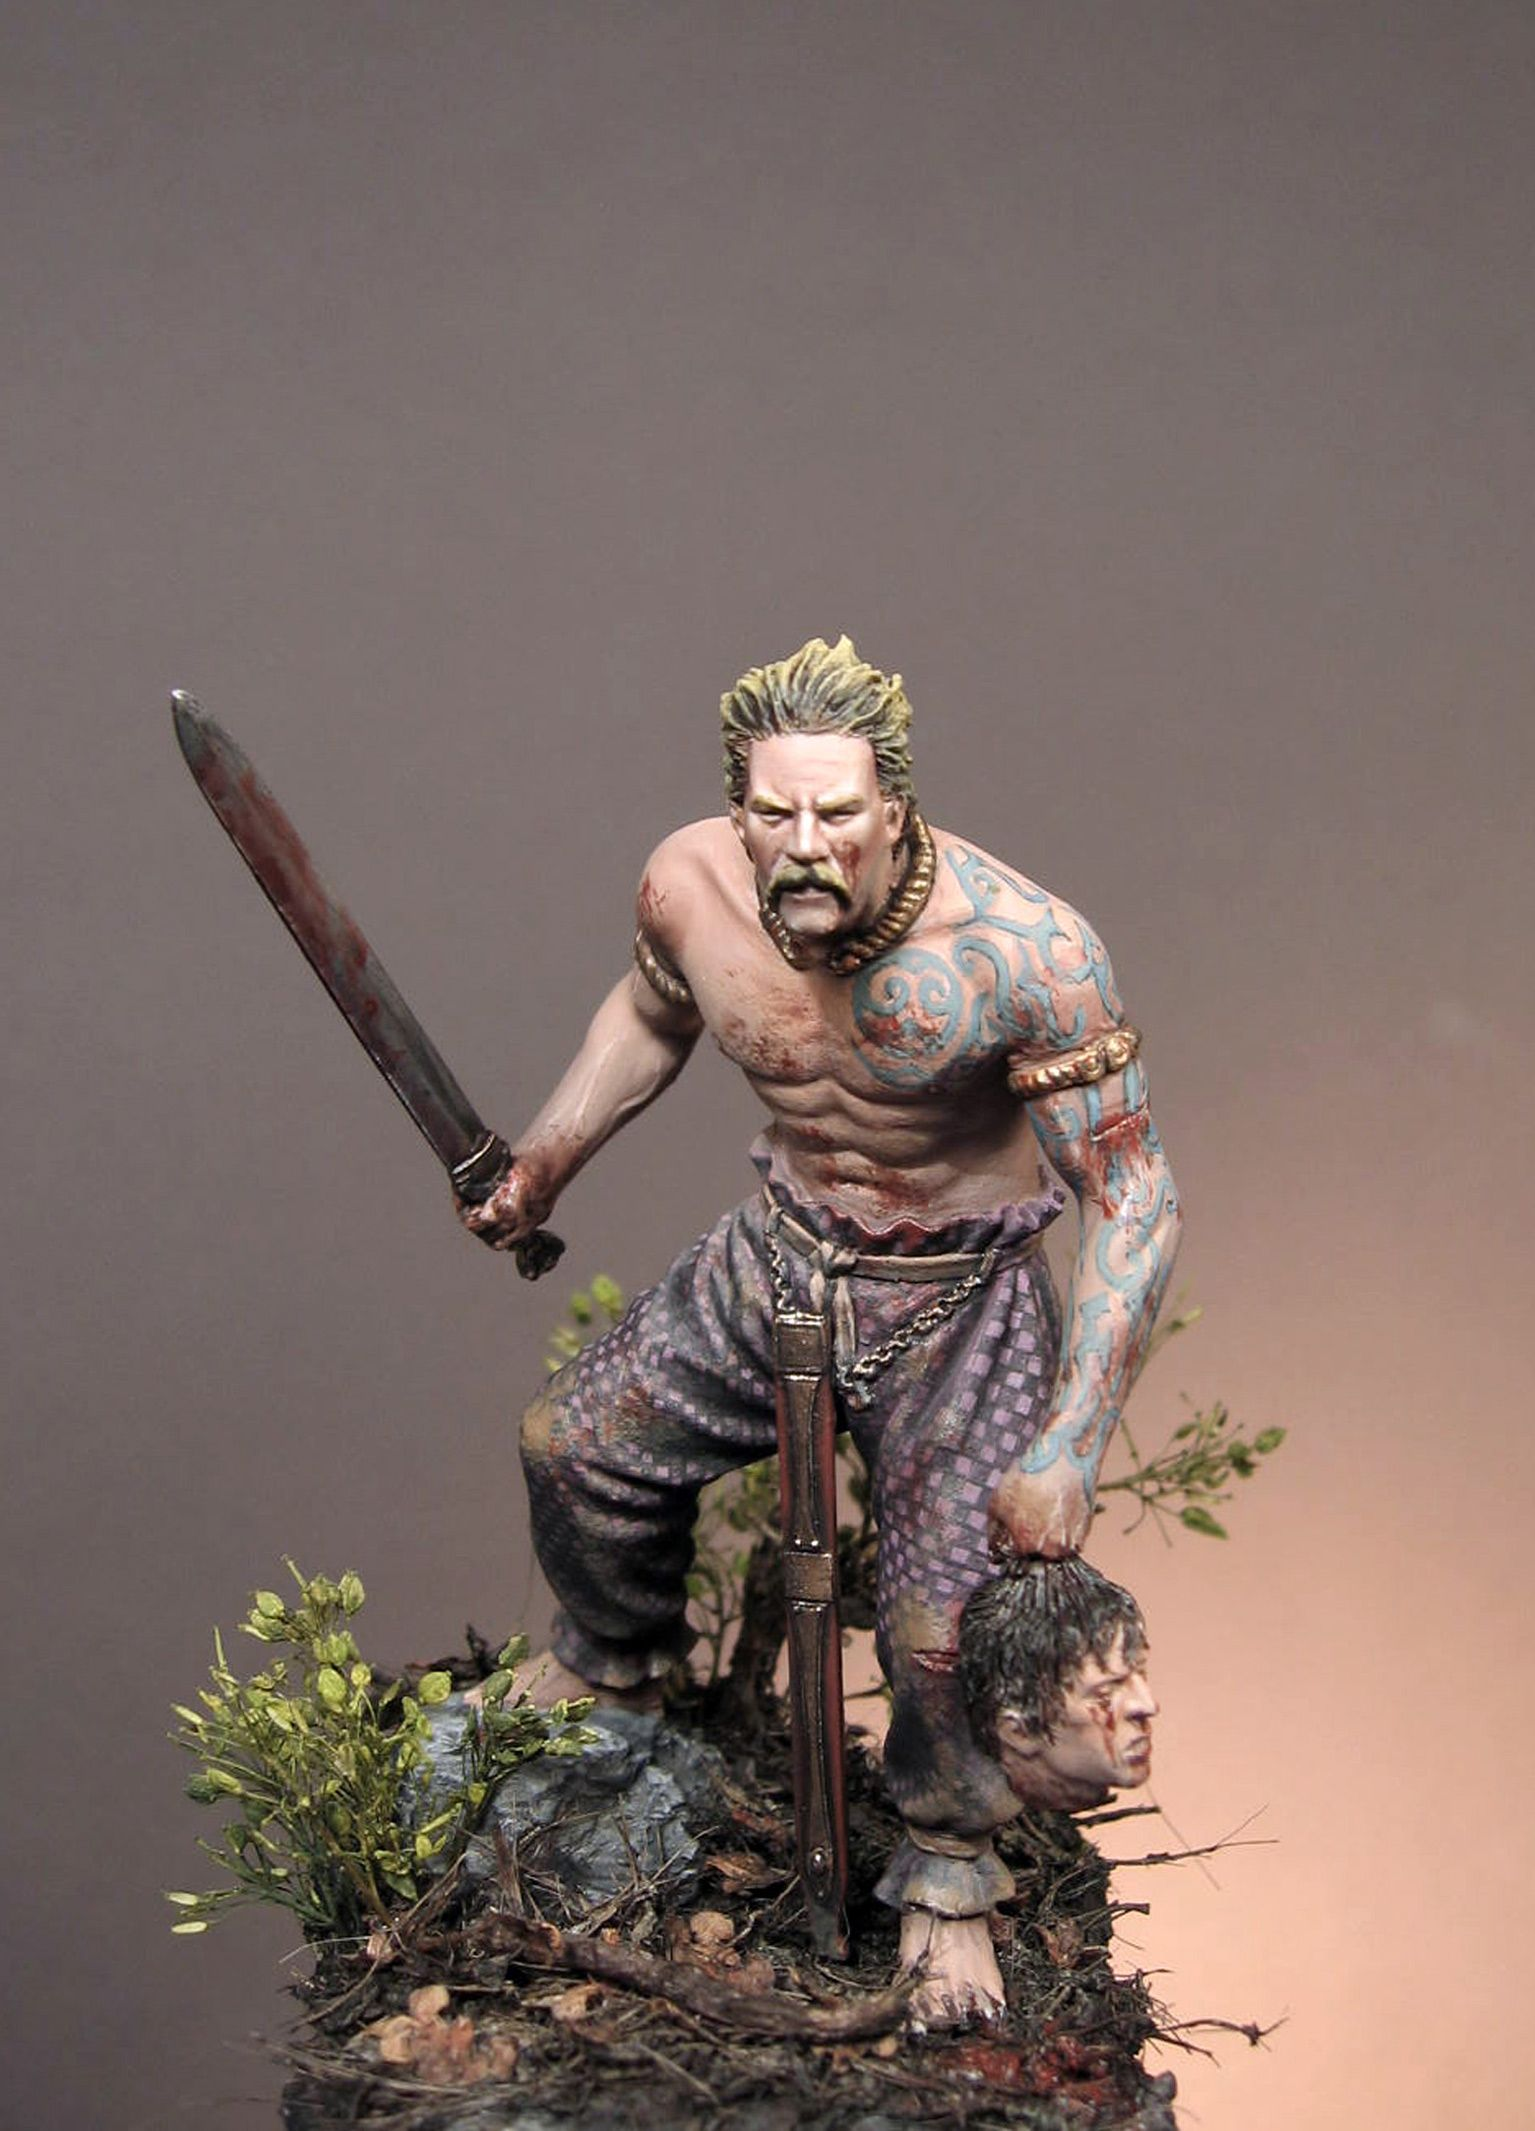 celtic warrior - Google Search   Painting ideas   Pinterest   See ...